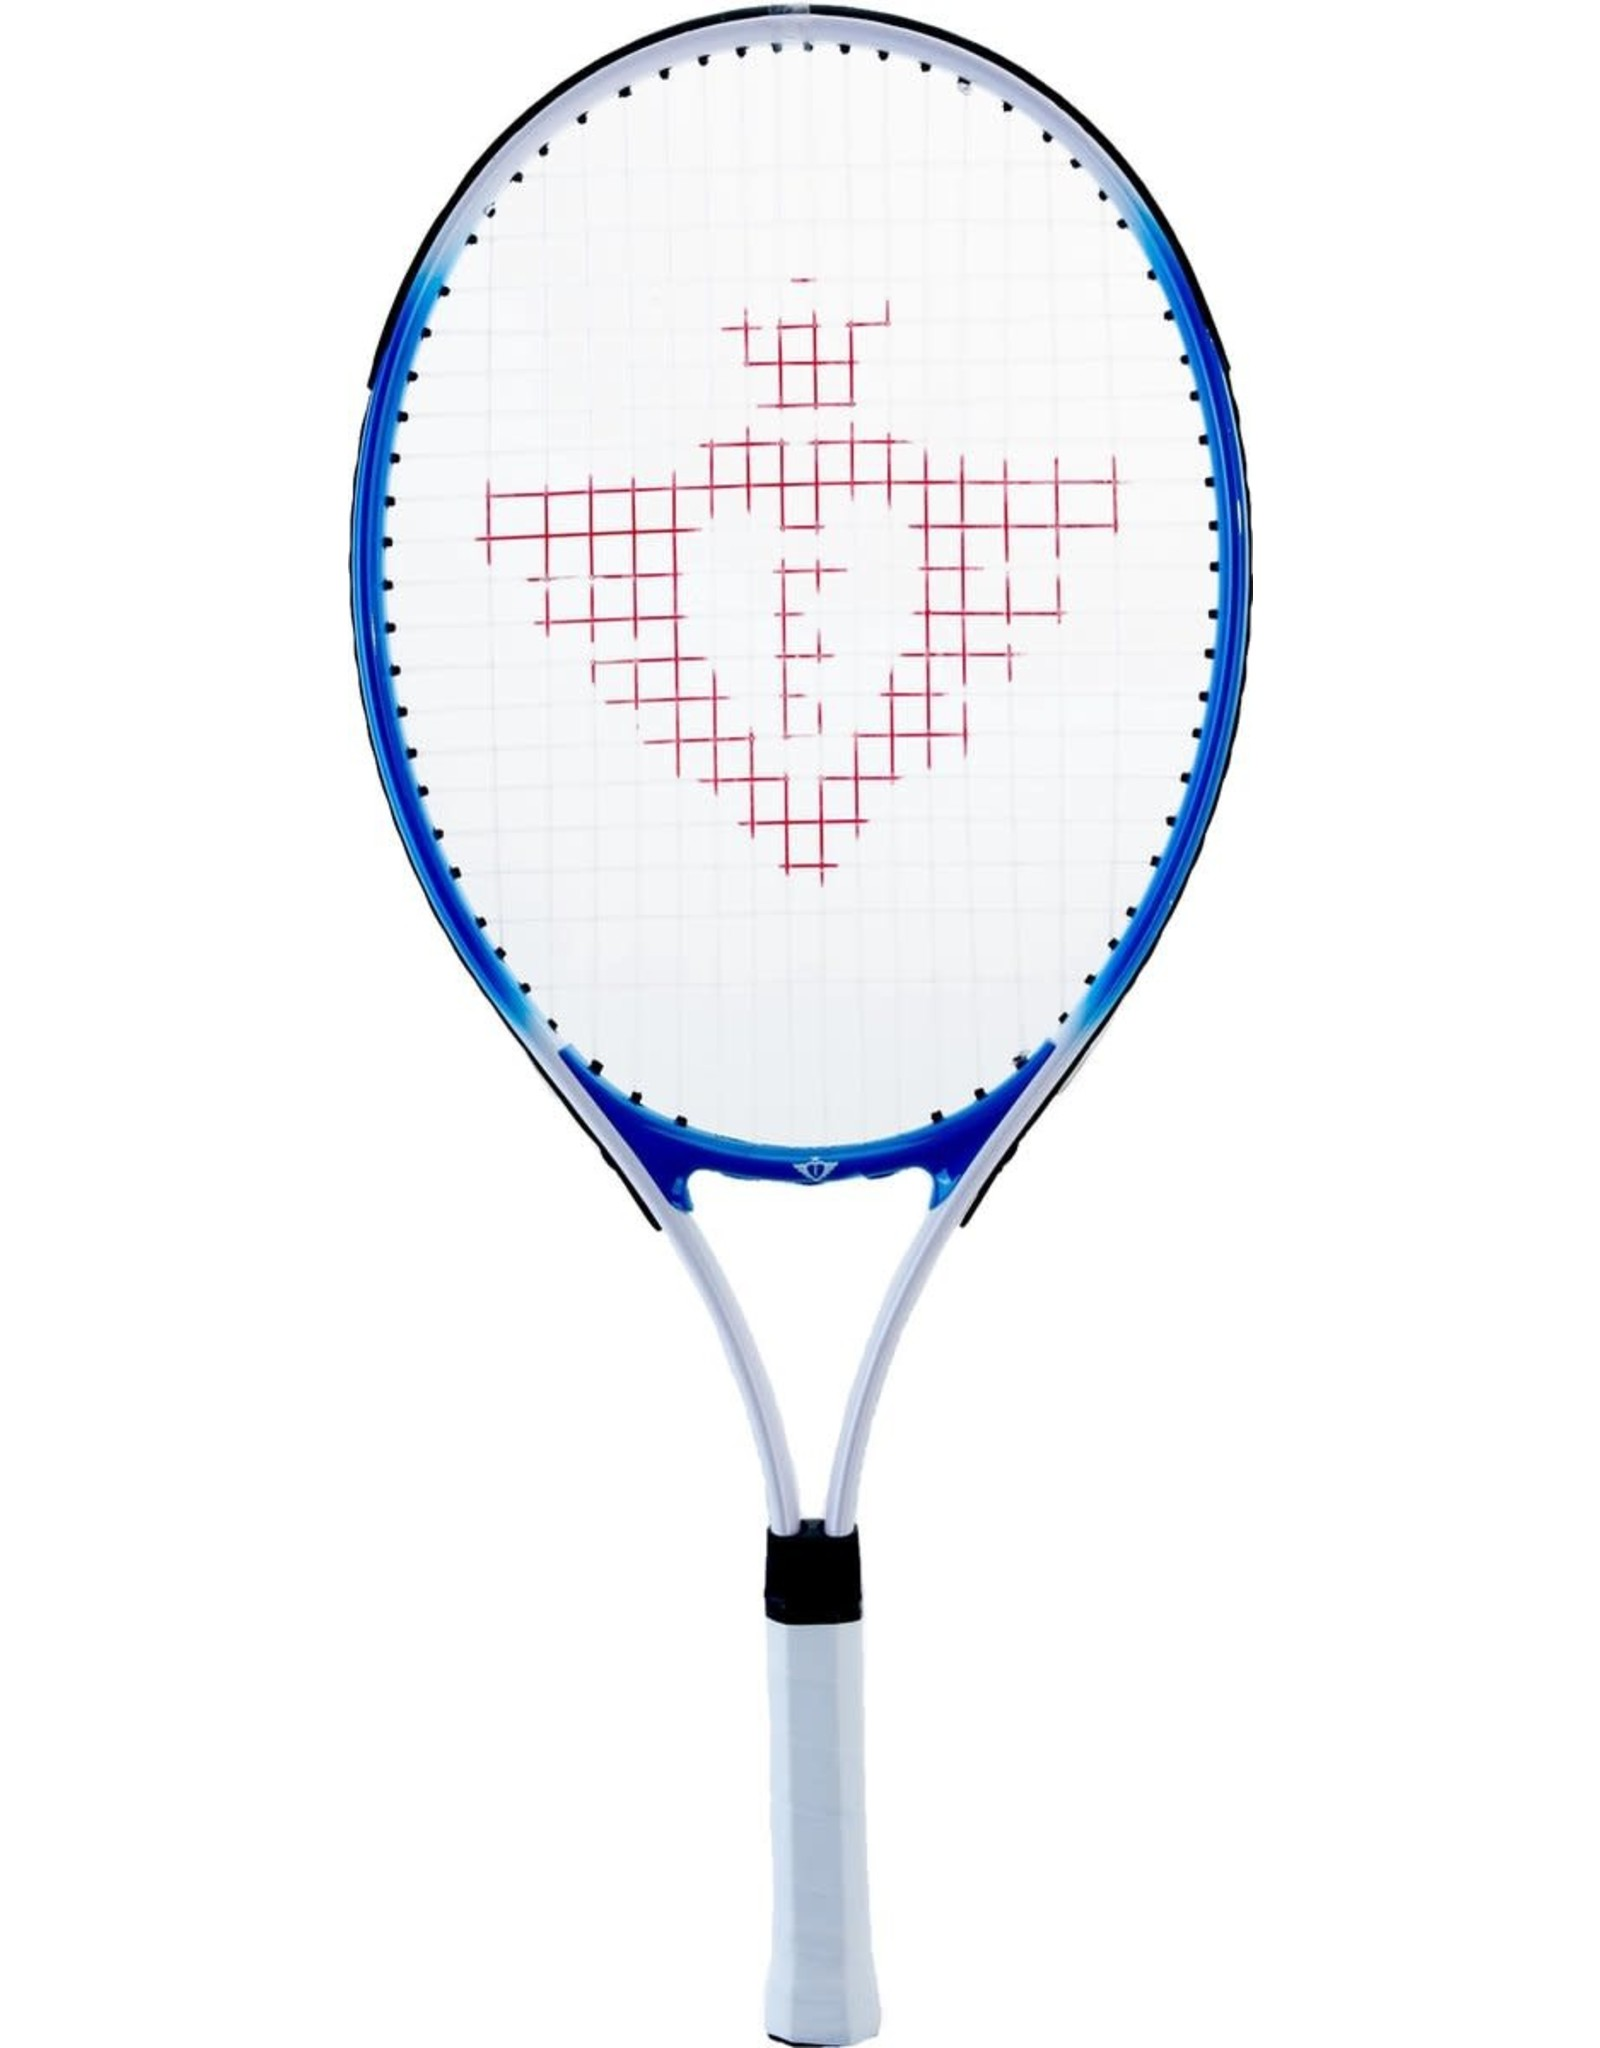 ANGEL SPORTS Angel Sports 25 inch Aluminium Tennisracket - Blauw - 2 Tennisballen - L1